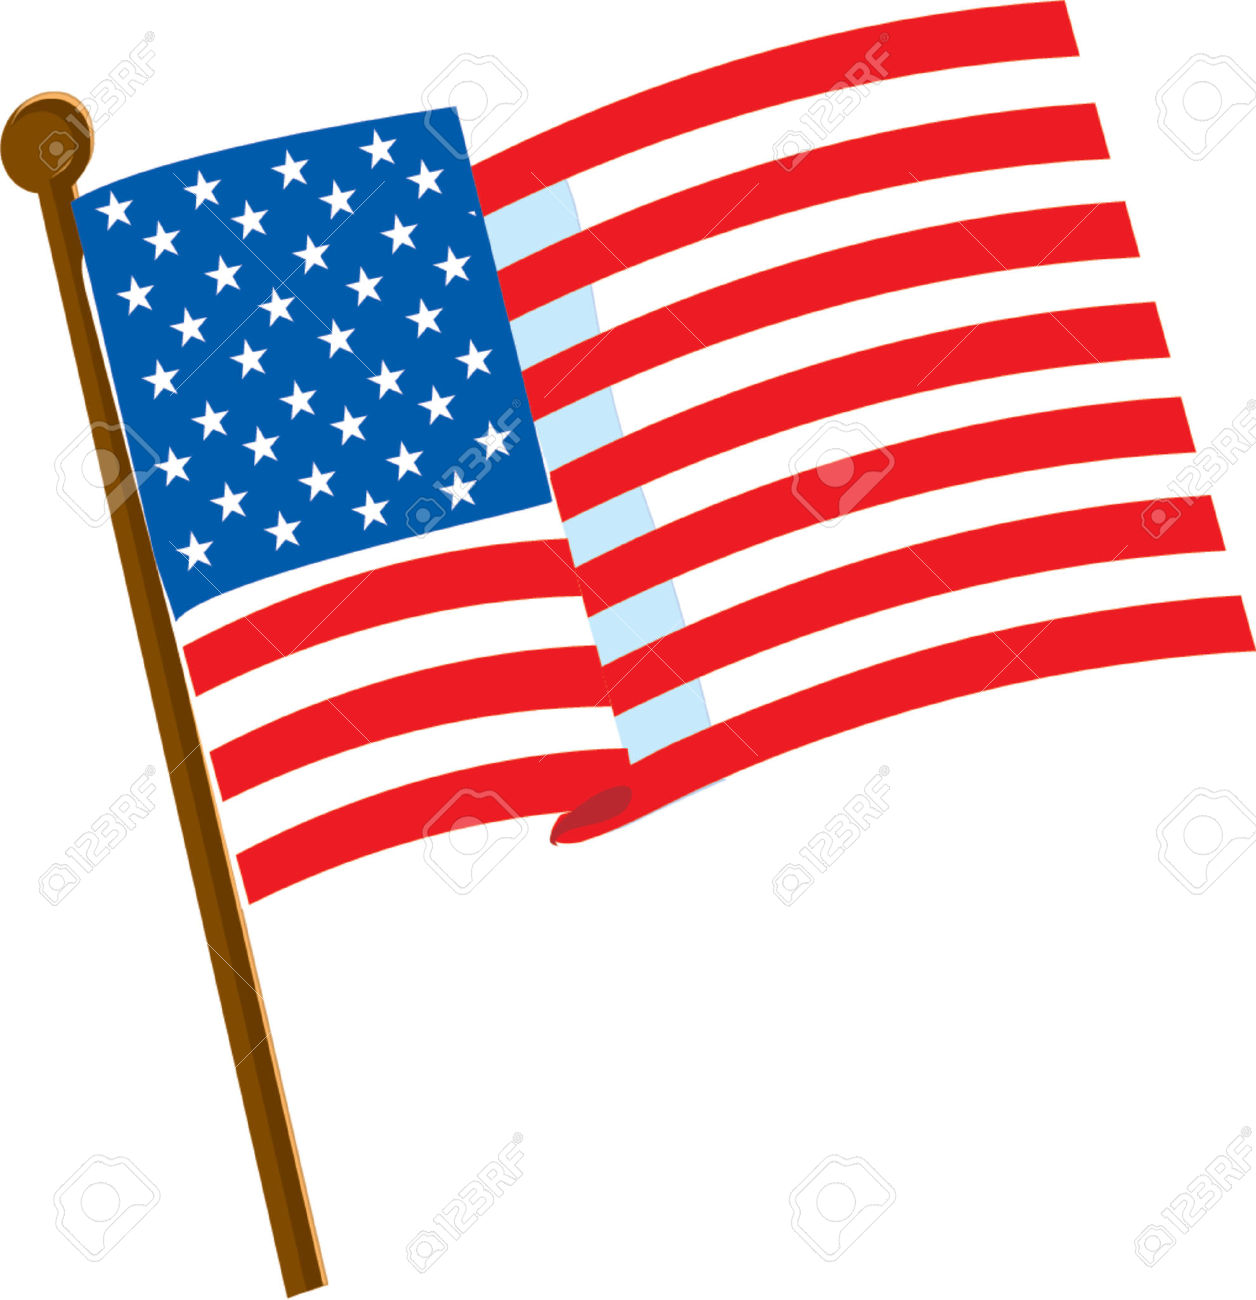 cartoon american flag American flag clipart white background pencil and in color jpg